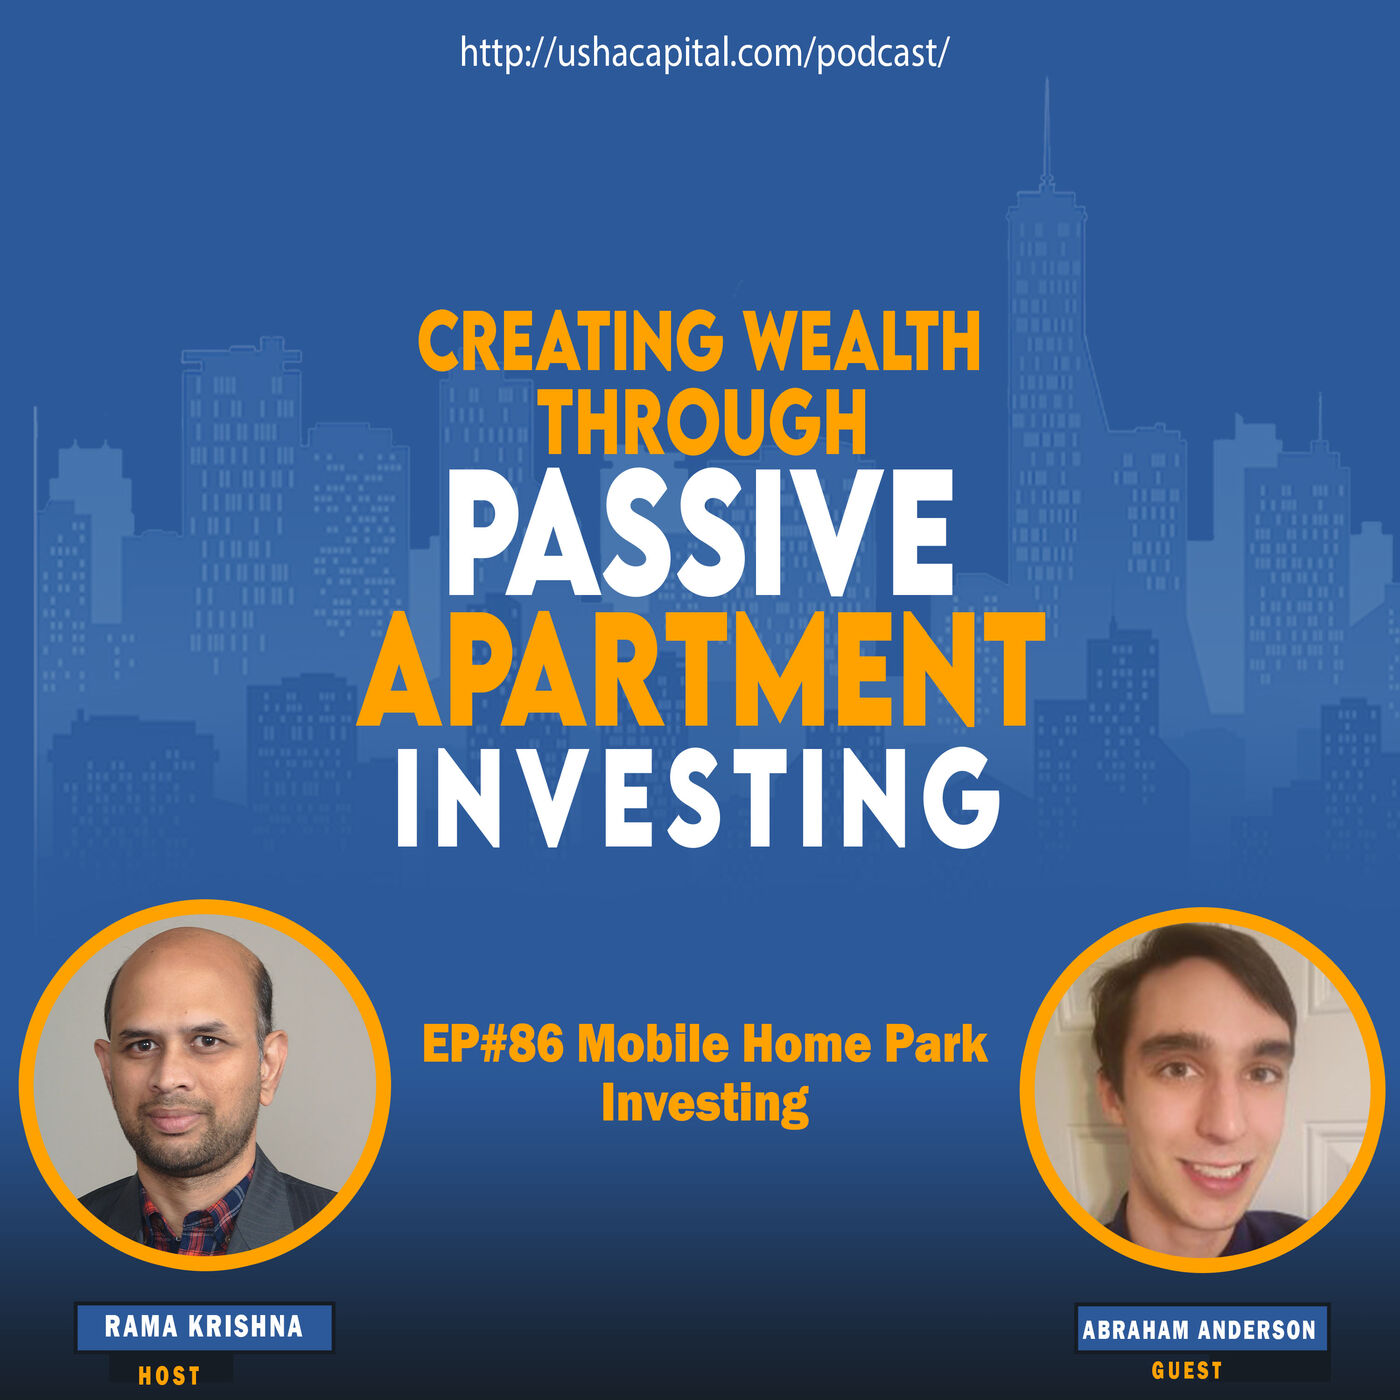 EP#86 Mobile Home Park Investing with Abraham Anderson